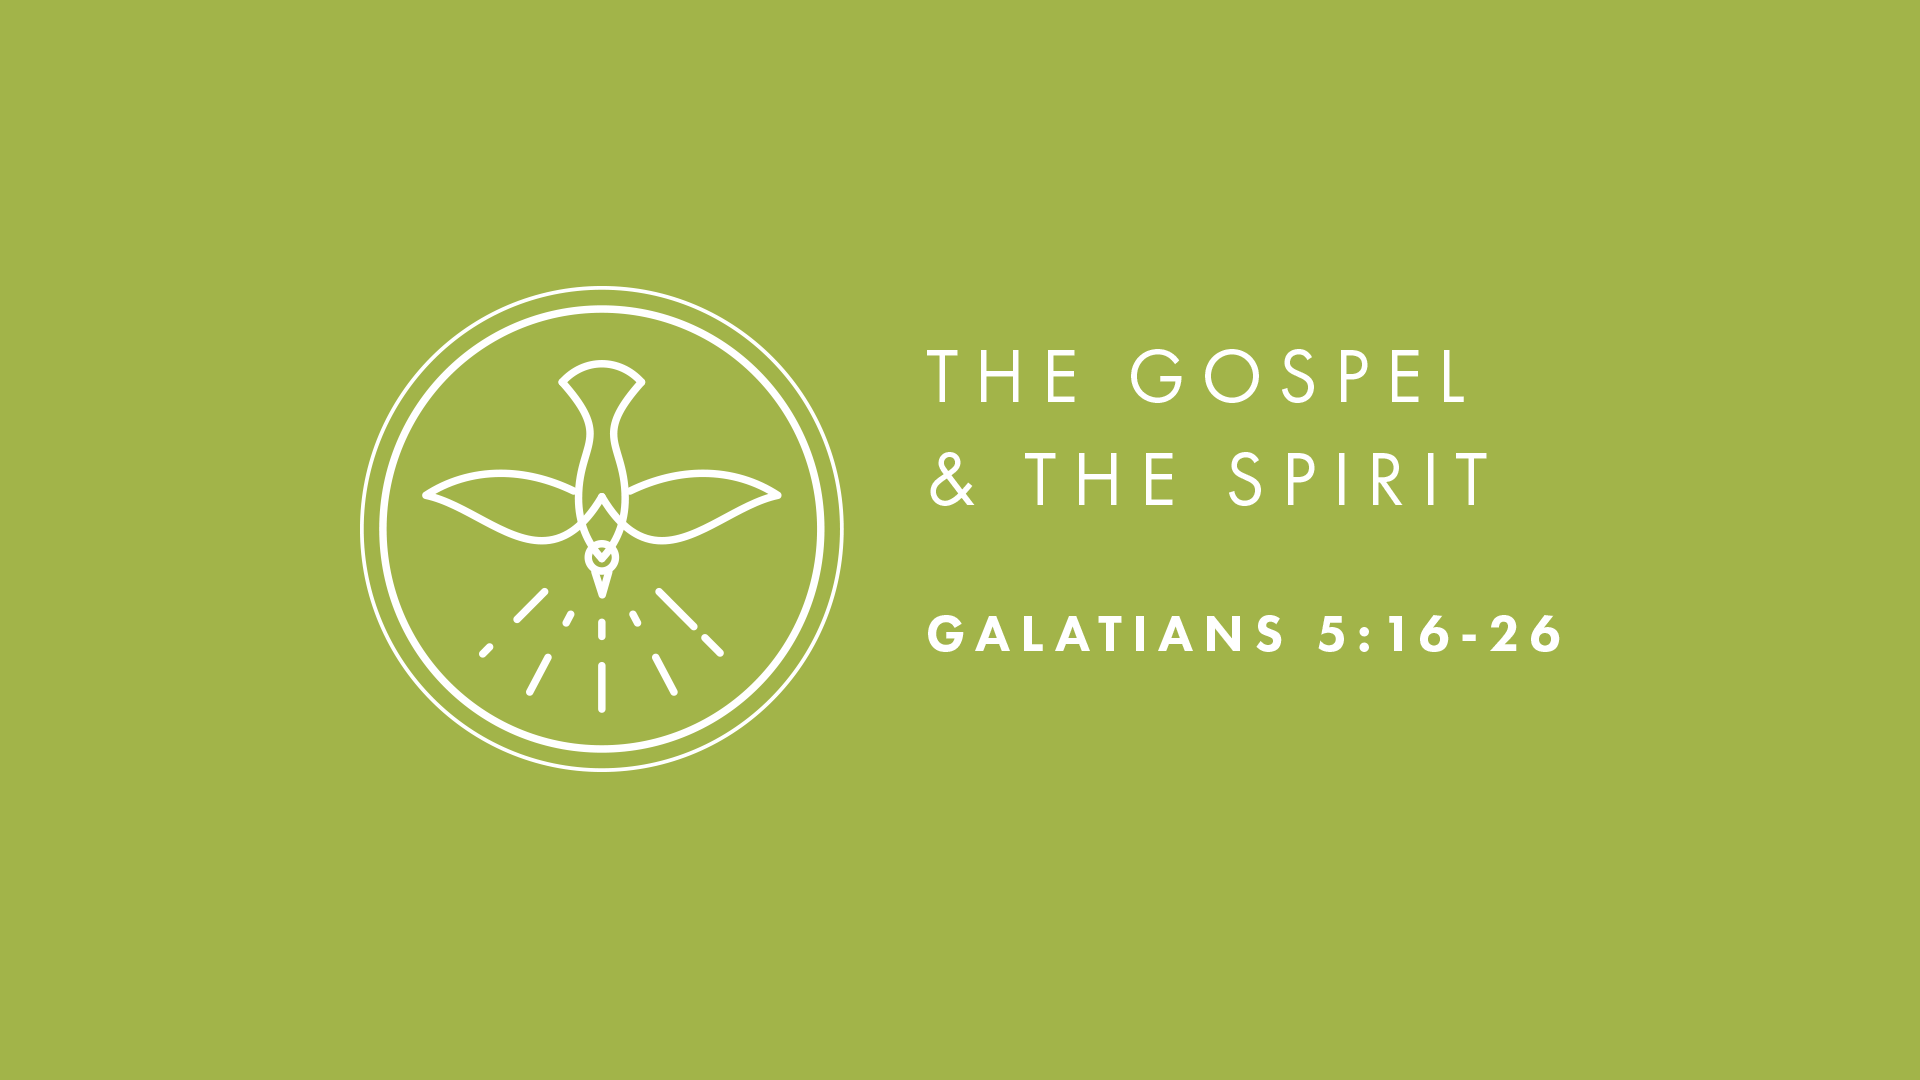 The Gospel and the Spirit